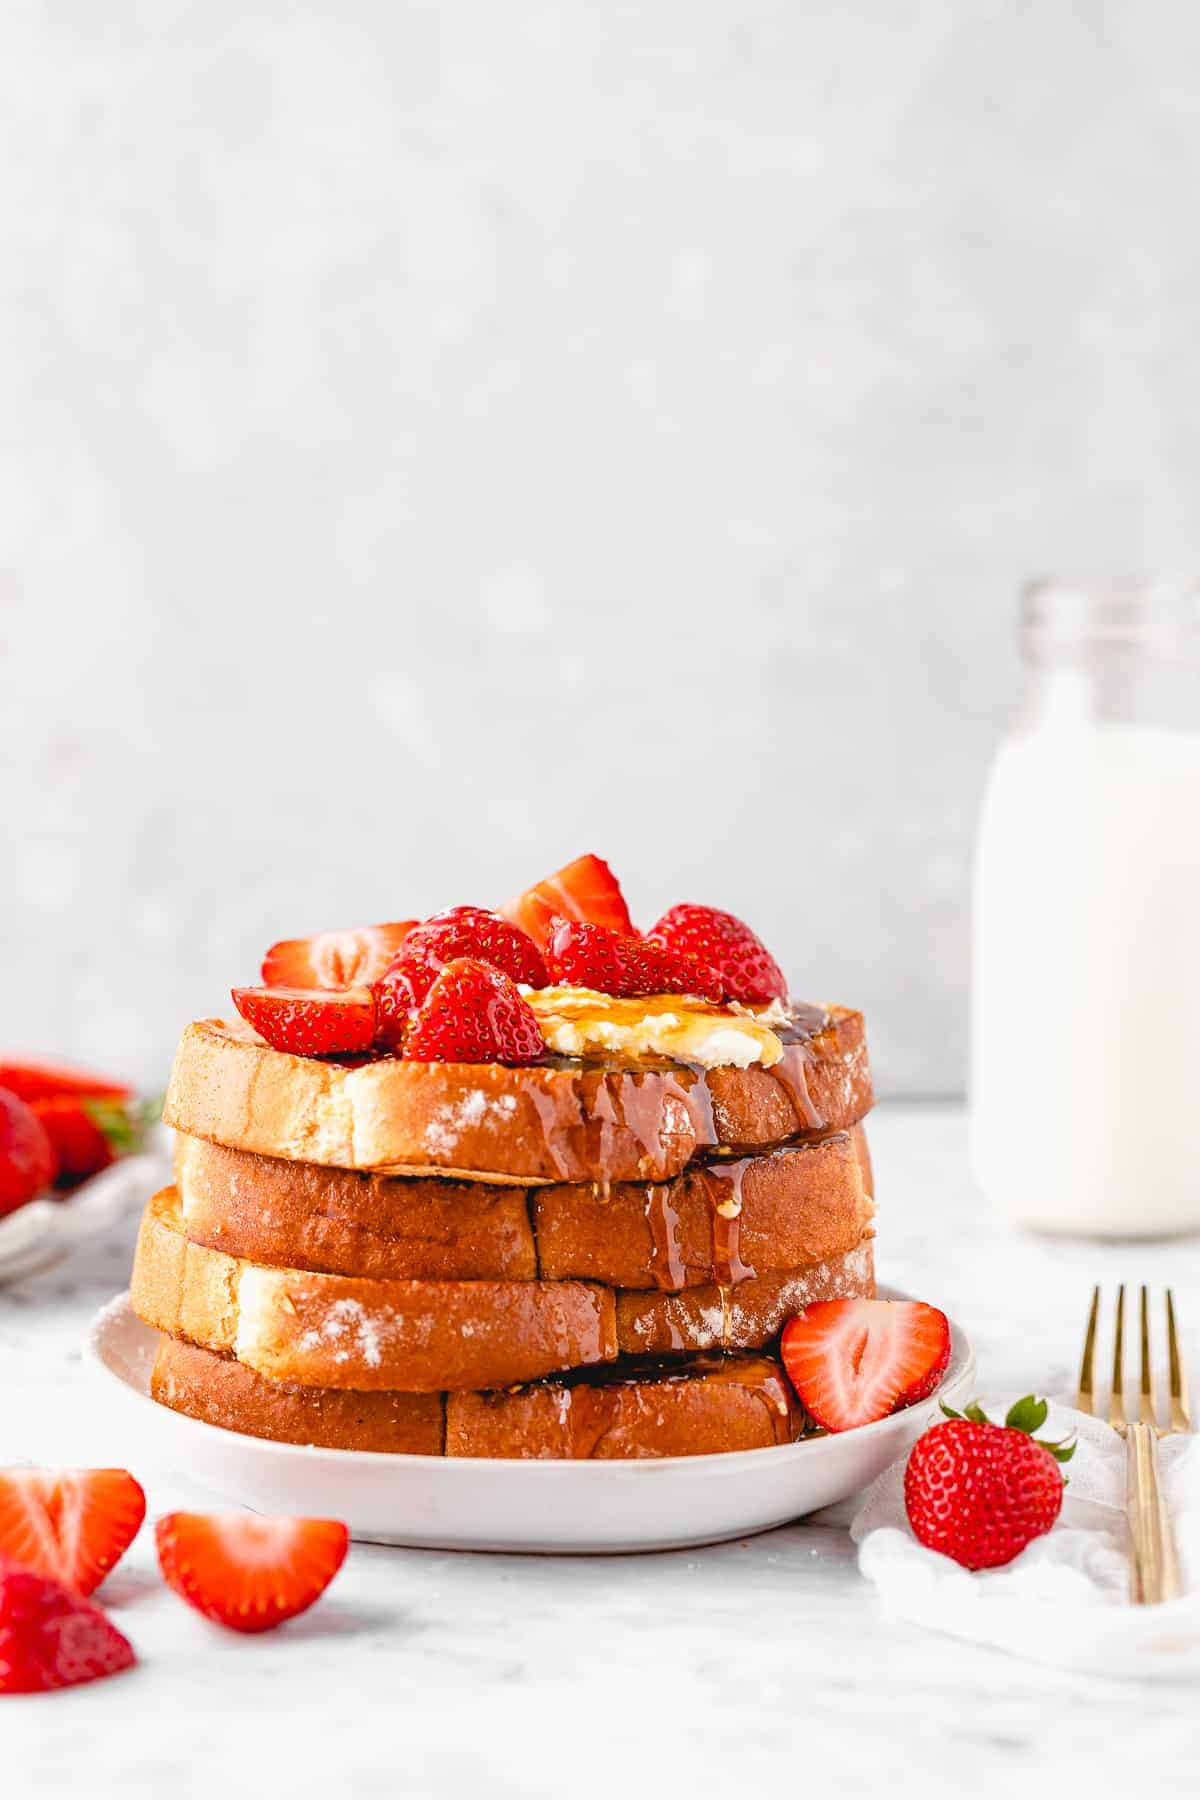 French toast stacked on a plate.